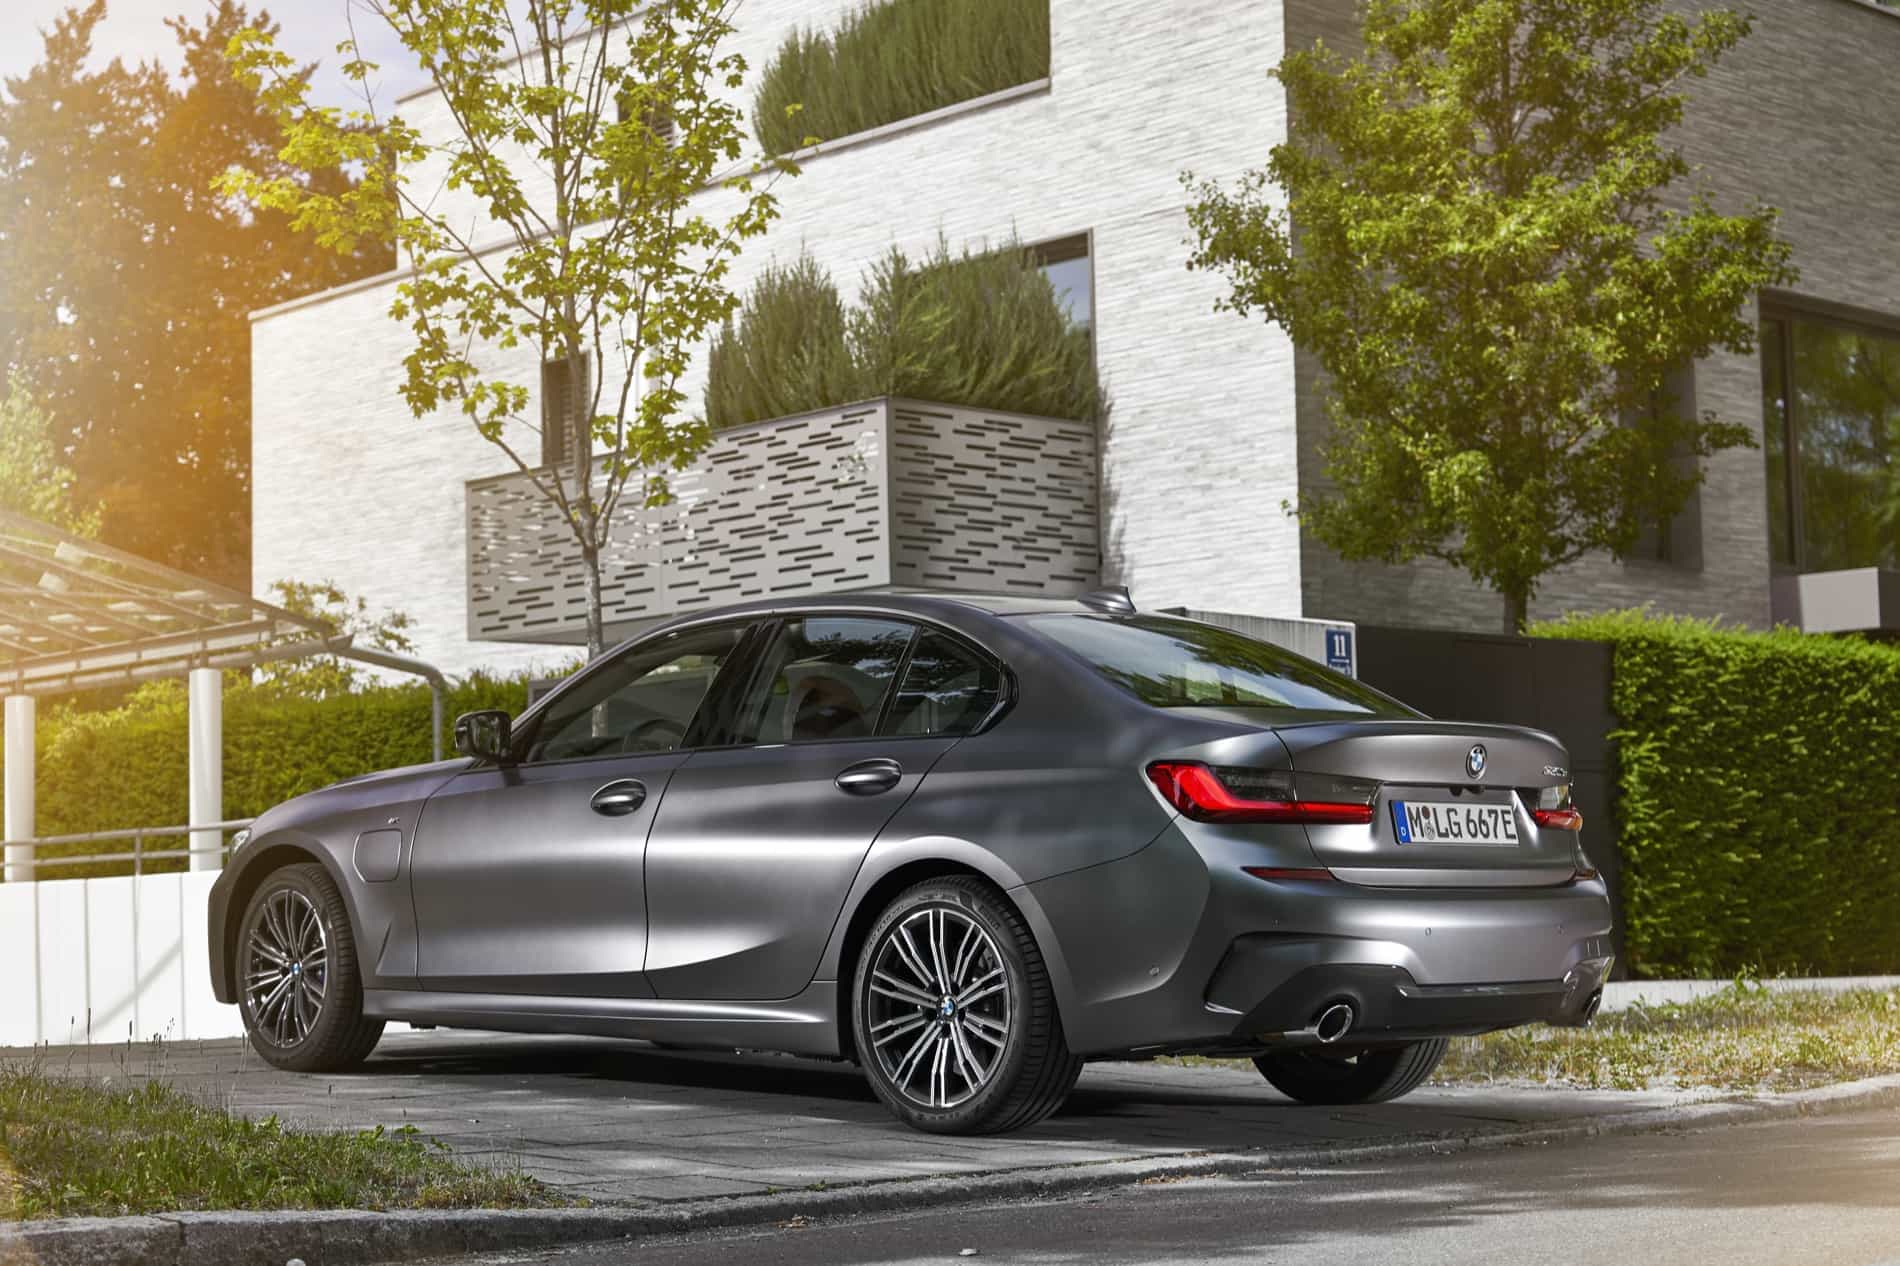 BMW_3_Series_Plug-in_Hybrid-023